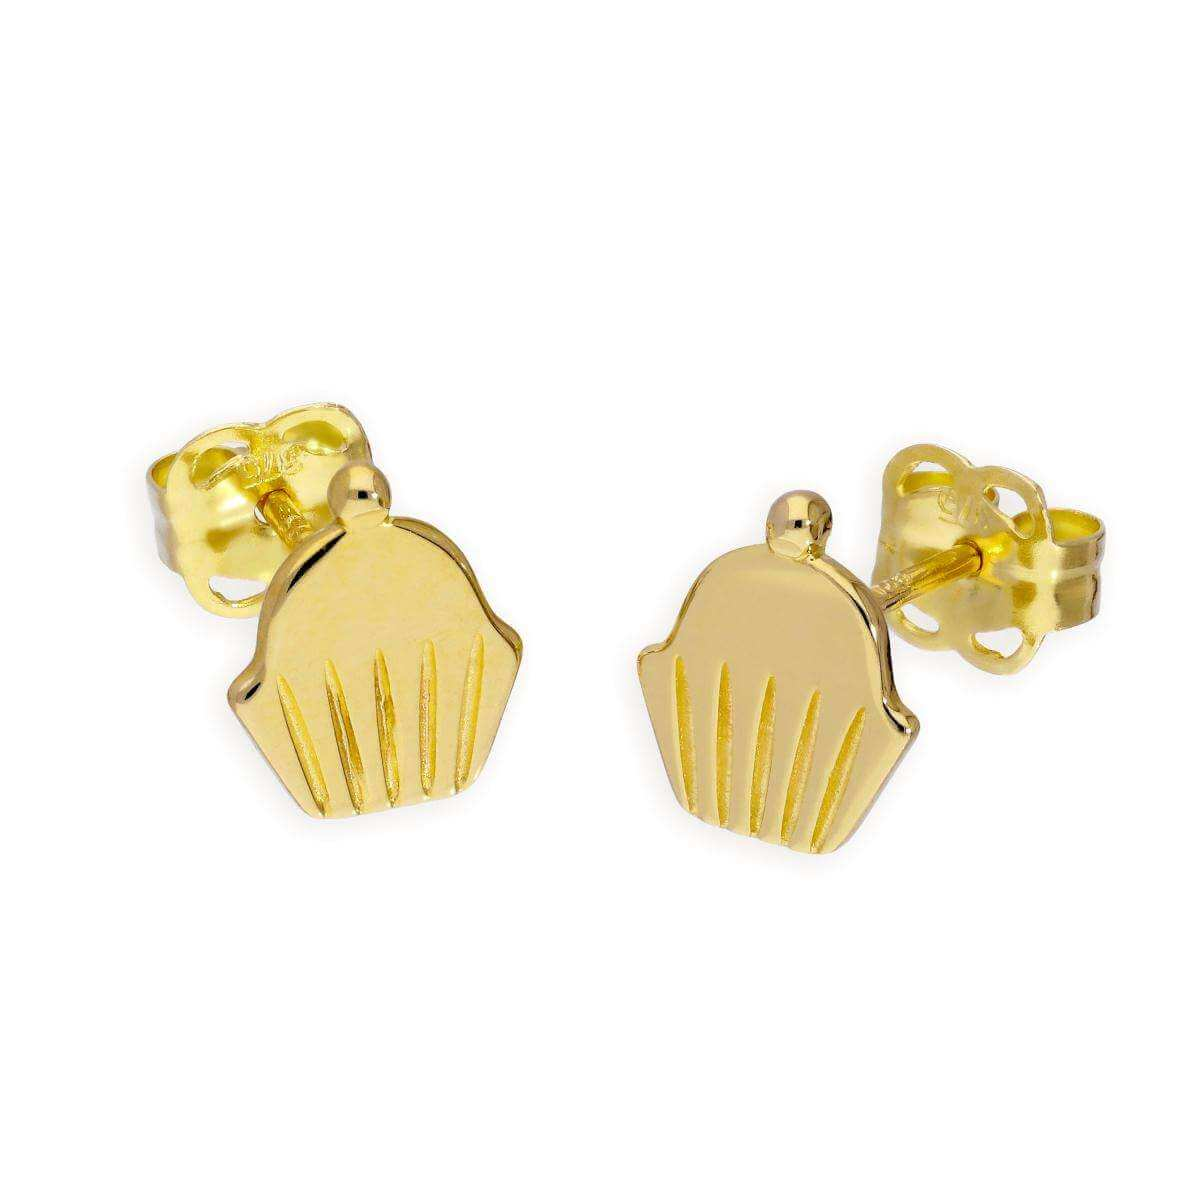 9ct Gold Cupcake Stud Earrings